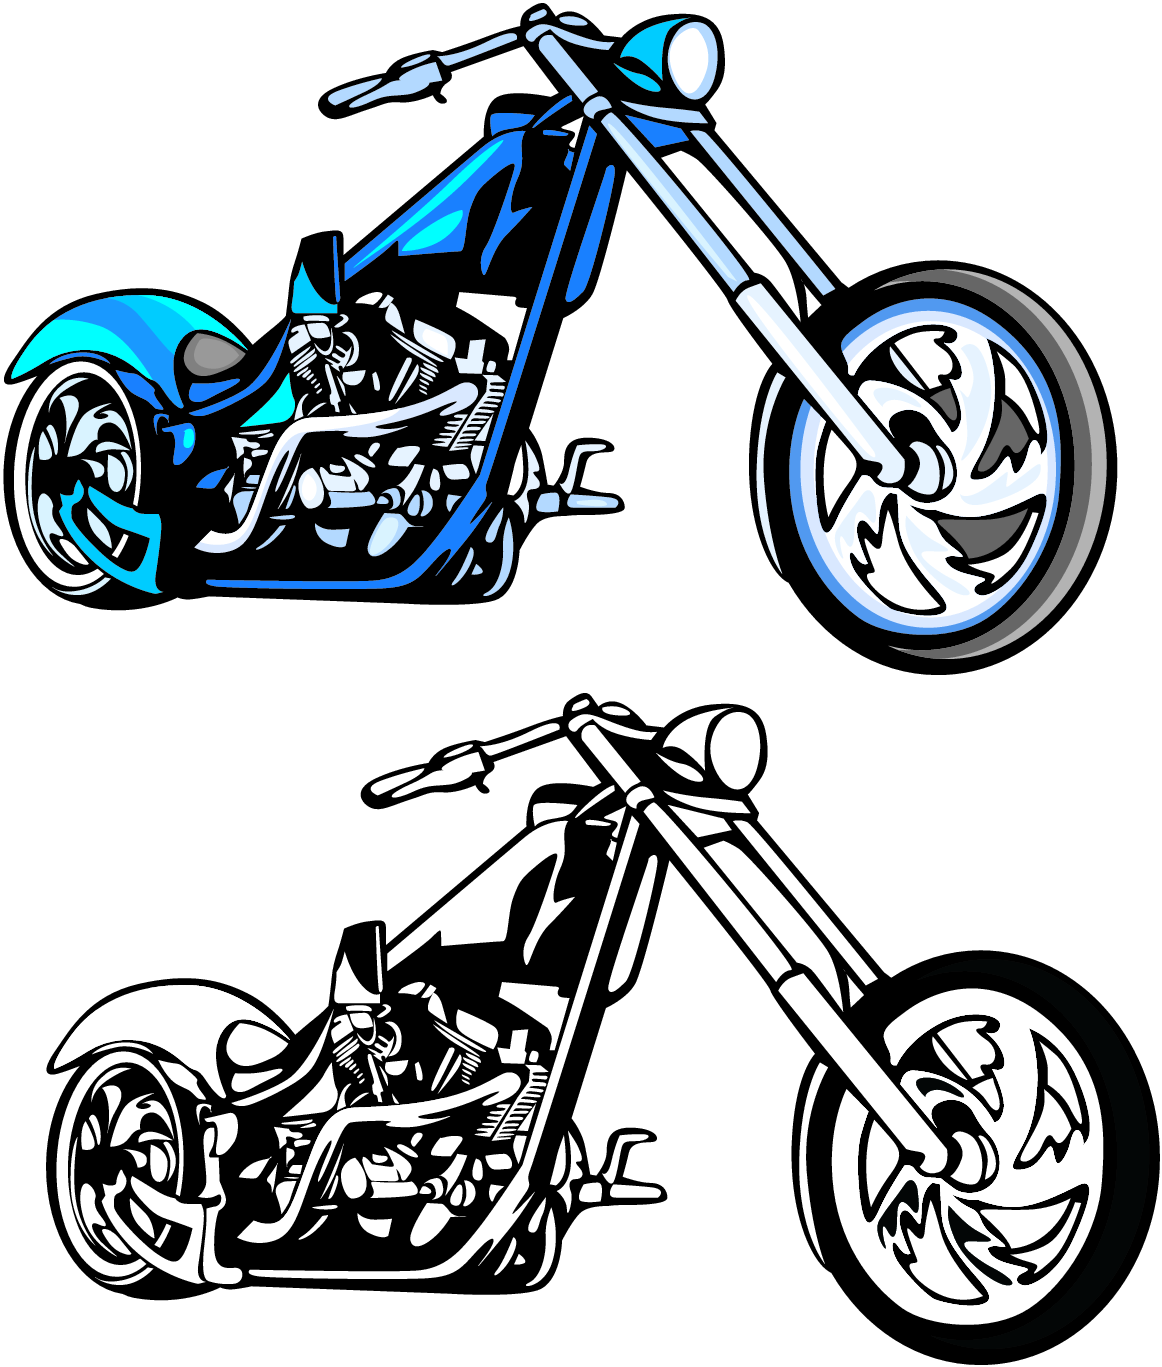 graphic Harley davidson clipart project. Clip art free projects.